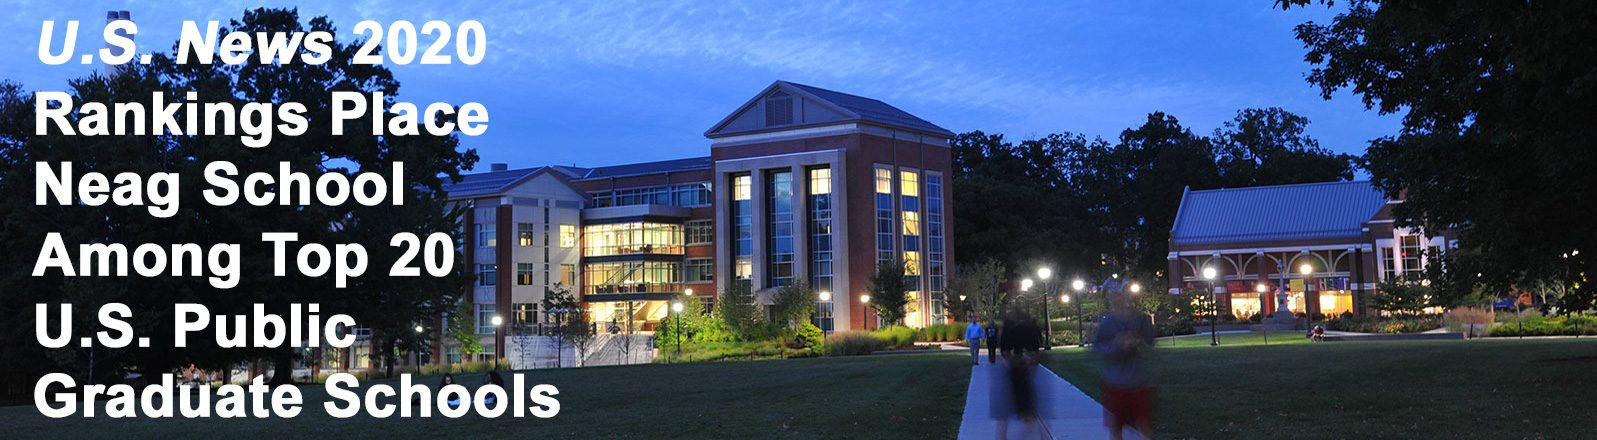 Neag building at night, text reads: US News 2020 Rankings Place Neag School Among Top 20 US Public Graduate Schools